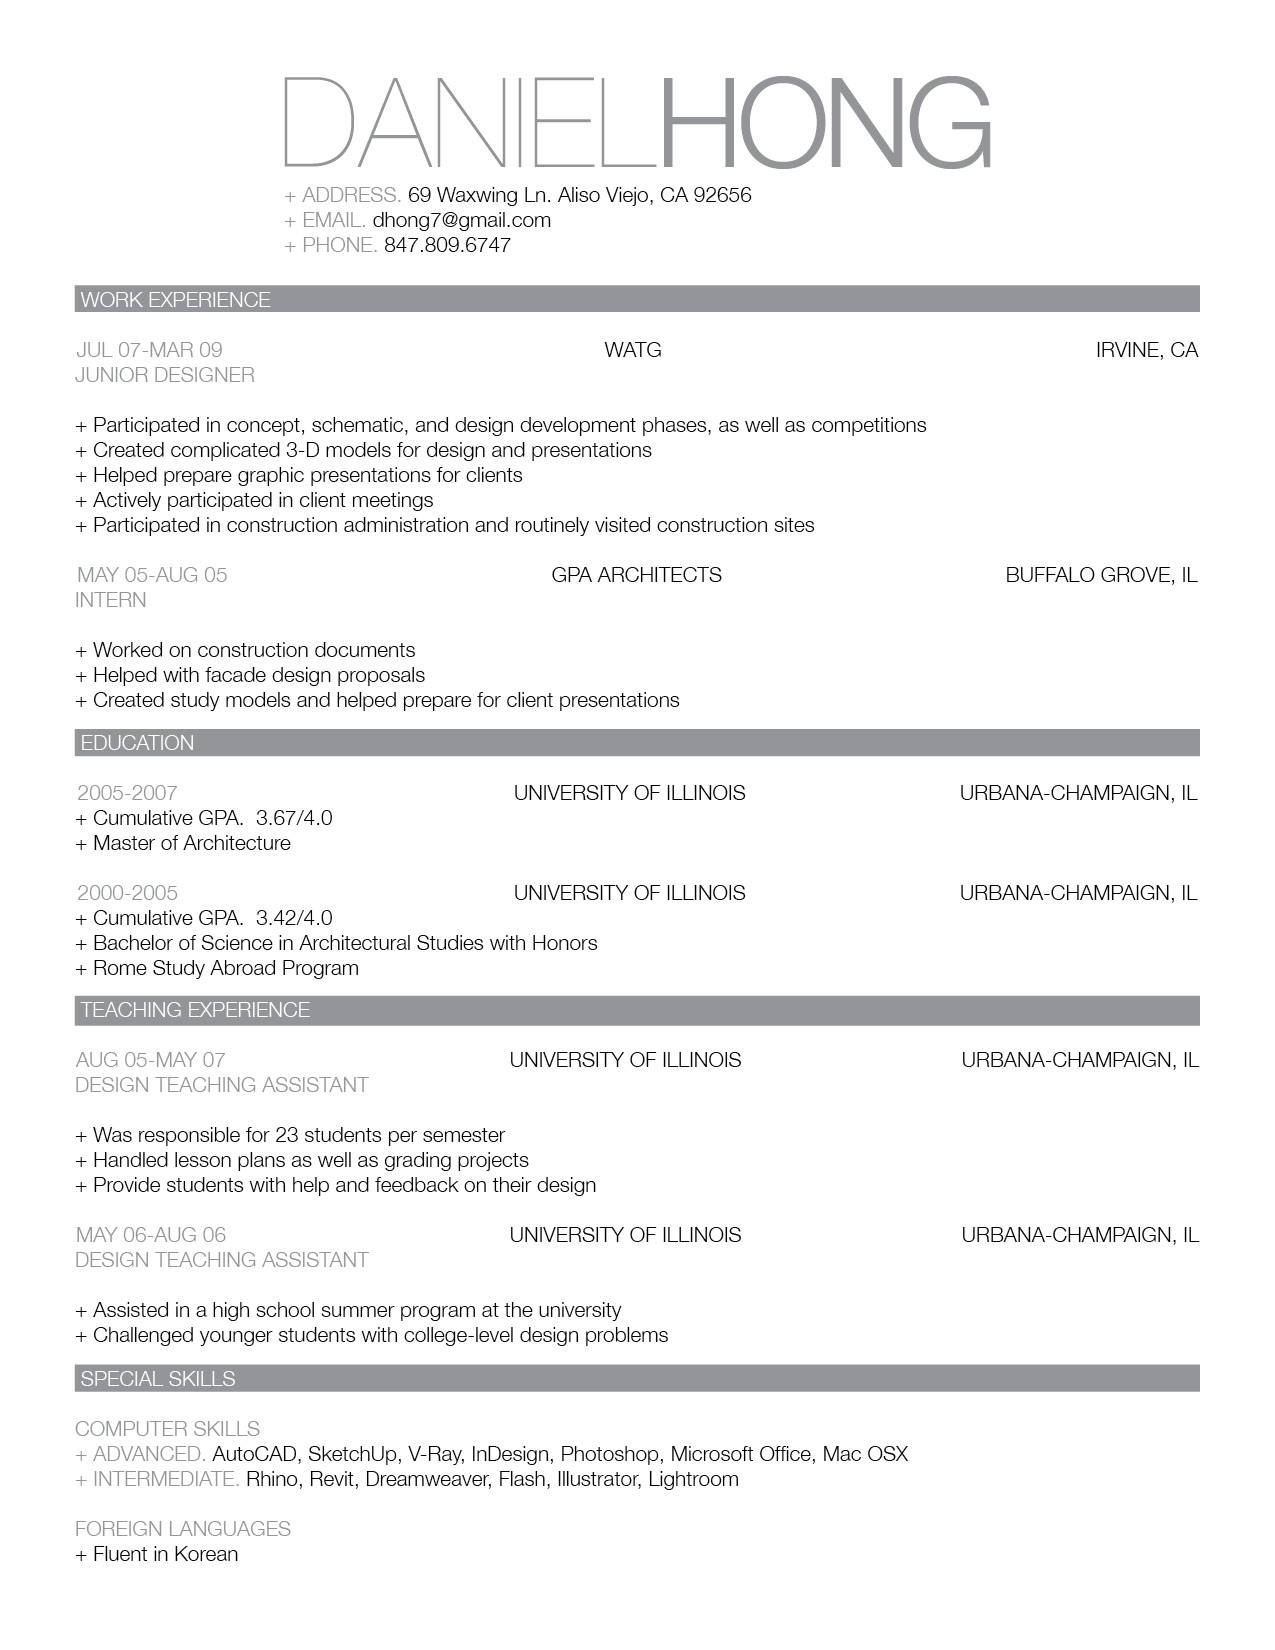 Opposenewapstandardsus  Unusual Resume Chronological Basic Basic Sample Resume Cover Letter  With Marvelous Simple  With Delightful Education On Resume Also Build A Resume Free In Addition Resume Styles And Latex Resume As Well As Resume Summary Statement Additionally Resume Objective Sample From Writeupdonwebhomeipnet With Opposenewapstandardsus  Marvelous Resume Chronological Basic Basic Sample Resume Cover Letter  With Delightful Simple  And Unusual Education On Resume Also Build A Resume Free In Addition Resume Styles From Writeupdonwebhomeipnet